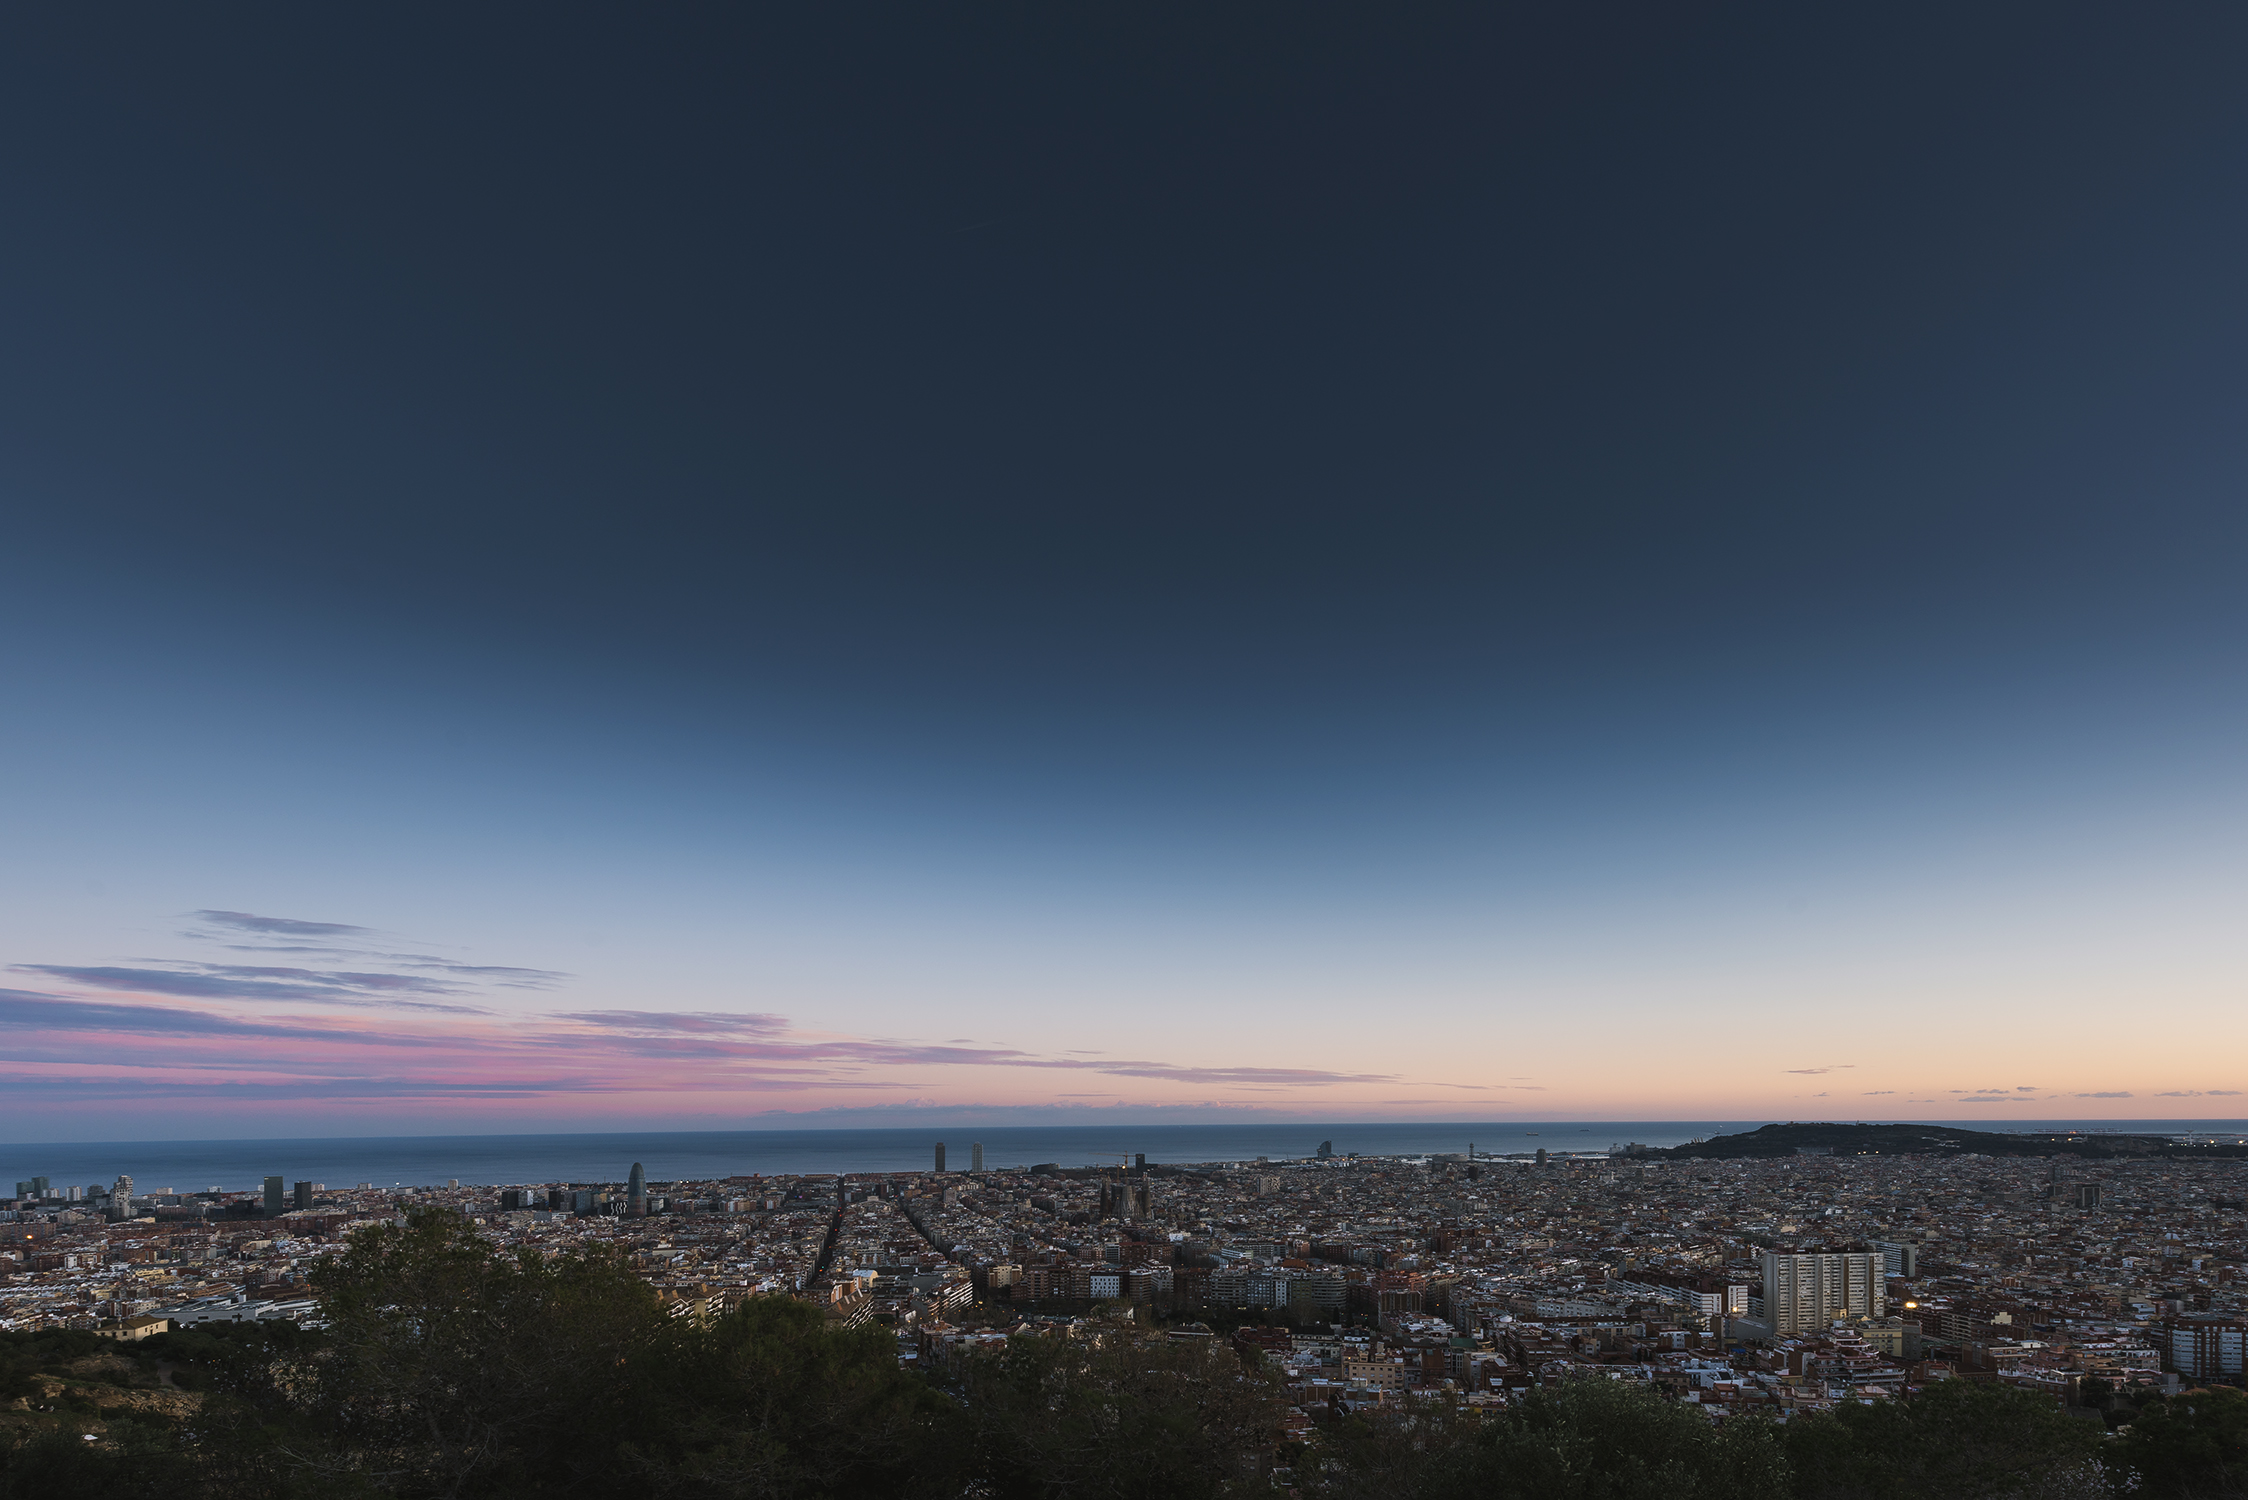 VIEW FROM BUNKERS DEL CARMEL, BARCELONA   Still can't get enough of this view �� even on a Saturday afternoon when it's full, there is still enough skyline for everyone!  #barcelona   #spain  #españa   #mondaymotivation  .  BASIC SETTINGS  CAMERA - Nikon D810 LENS - 14 - 24 mm f/2.8 FOCAL LENGTH - 14mm EXPOSURE - 1/6 sec f/11 ISO 64 TRIPOD & REMOTE SHUTTER  The sun sets over to the right out of frame, behind Tibidabo but for me the sky out to sea usually shows the most beautiful colours. Saturday was kind of peaceful and only some colours shone through but what better way to spend a Saturday afternoon!?  FIND BUNKERS FOR YOURSELF IF YOUR EVER IN BARCELONA -  http://bit.ly/2nEV0U7